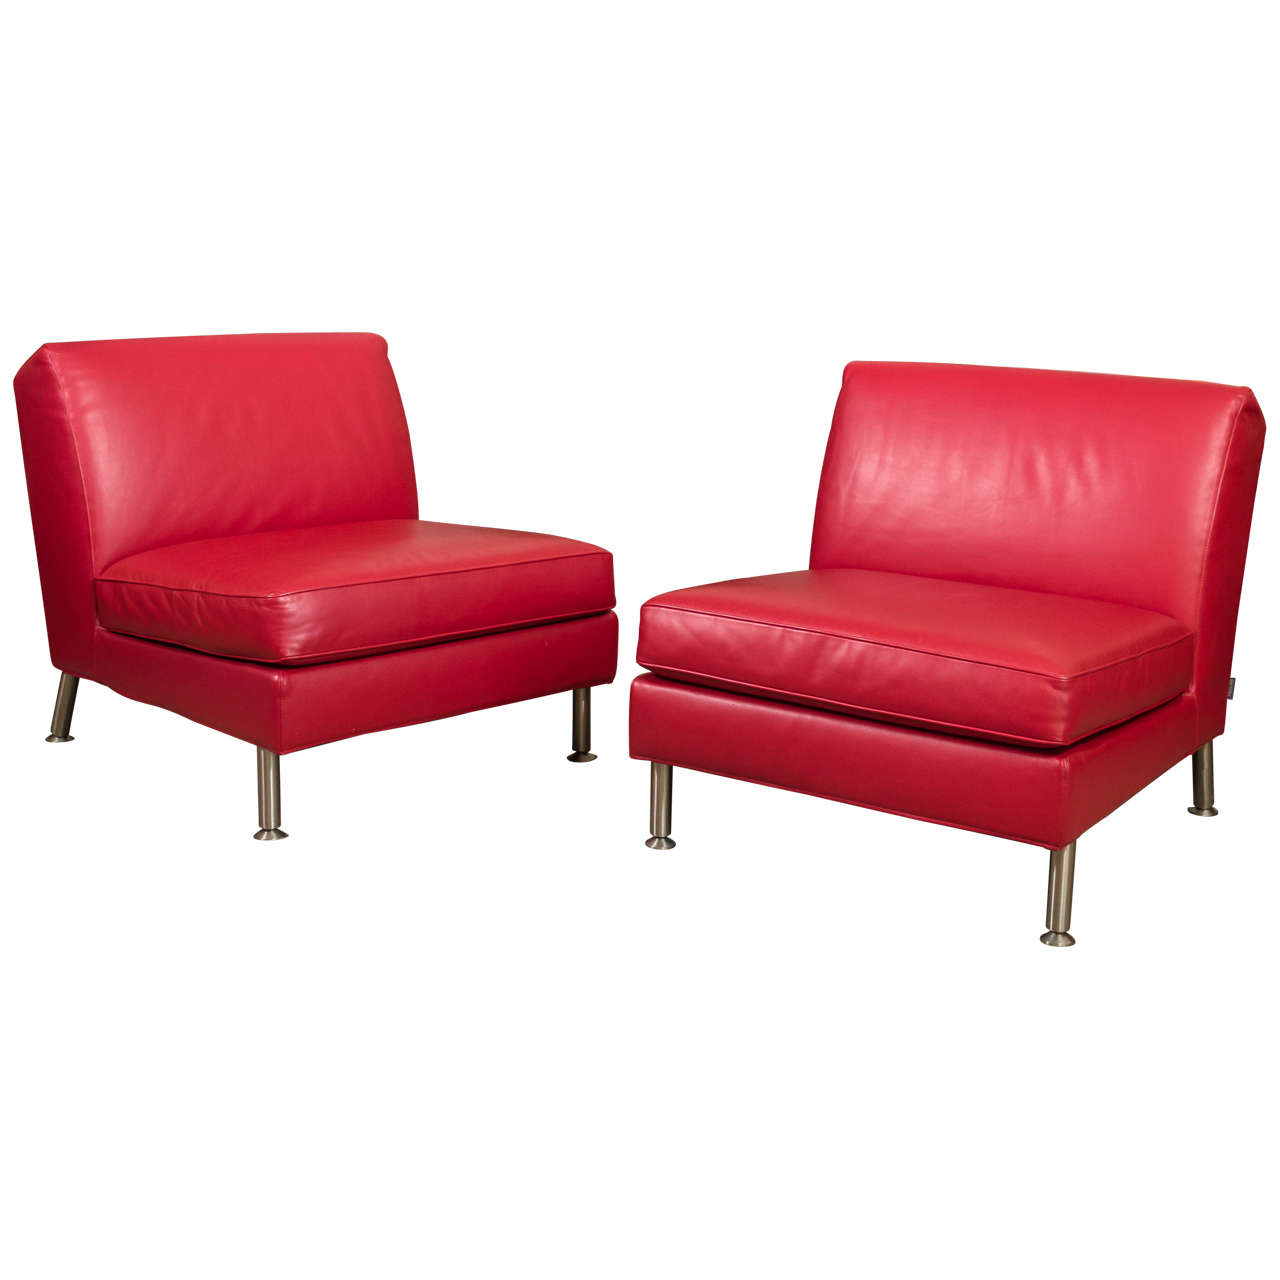 Pair Of Italian Red Leather Lounge Chairs By Minotti 1